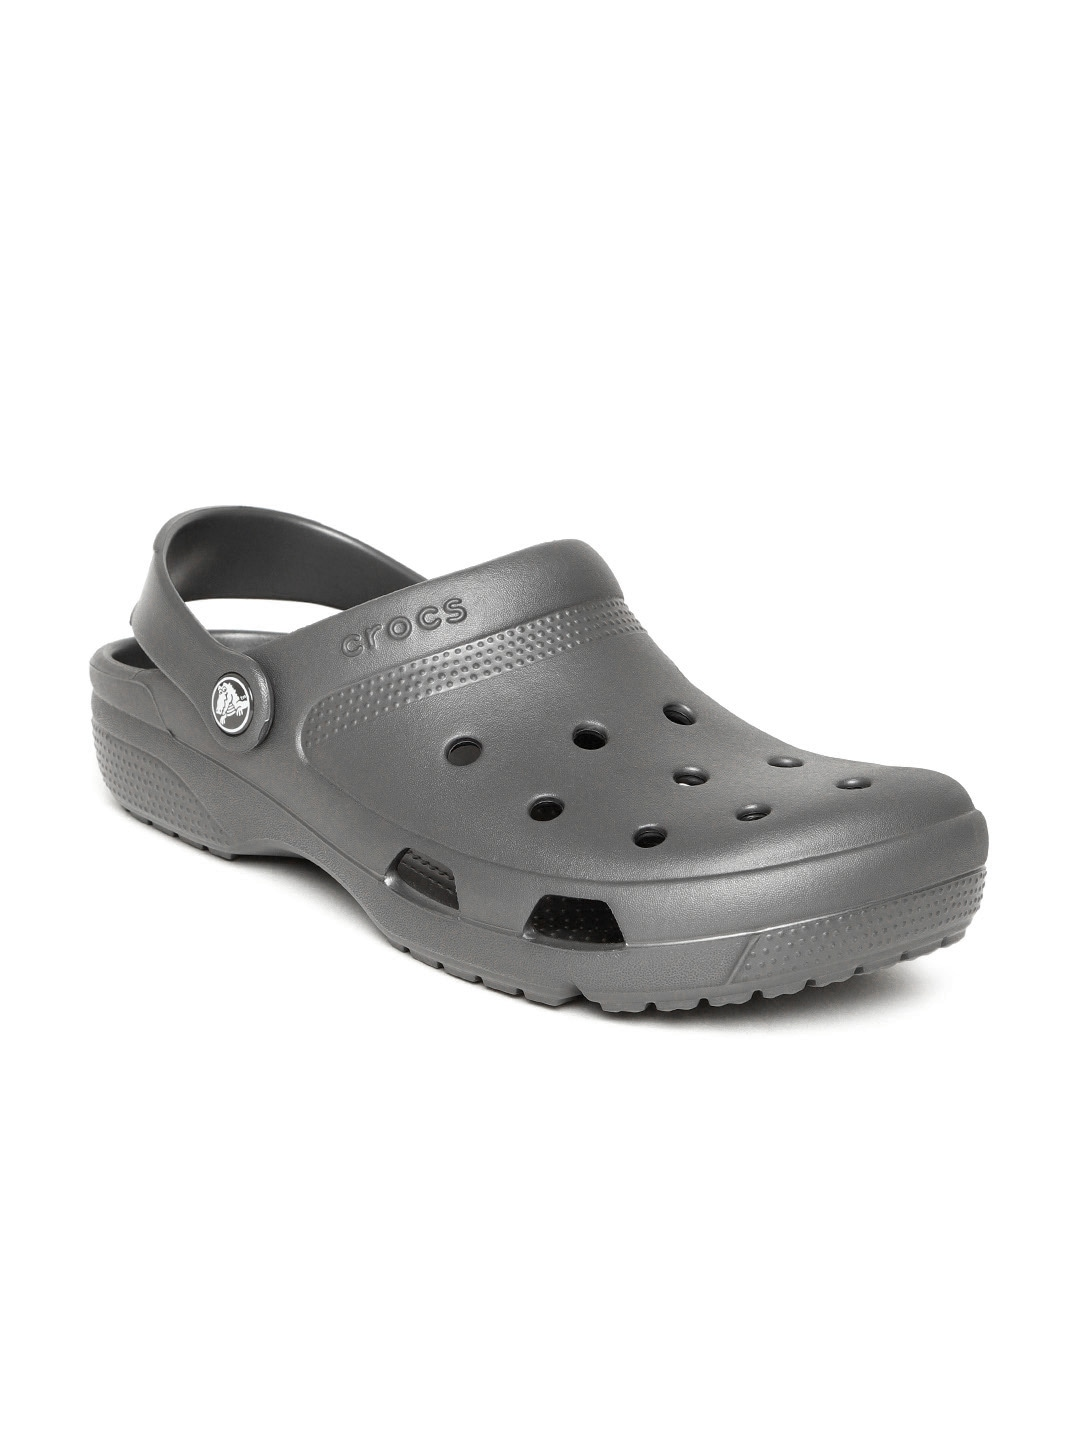 bea74d8c873cf1 Crocs Shoes Online - Buy Crocs Flip Flops   Sandals Online in India - Myntra